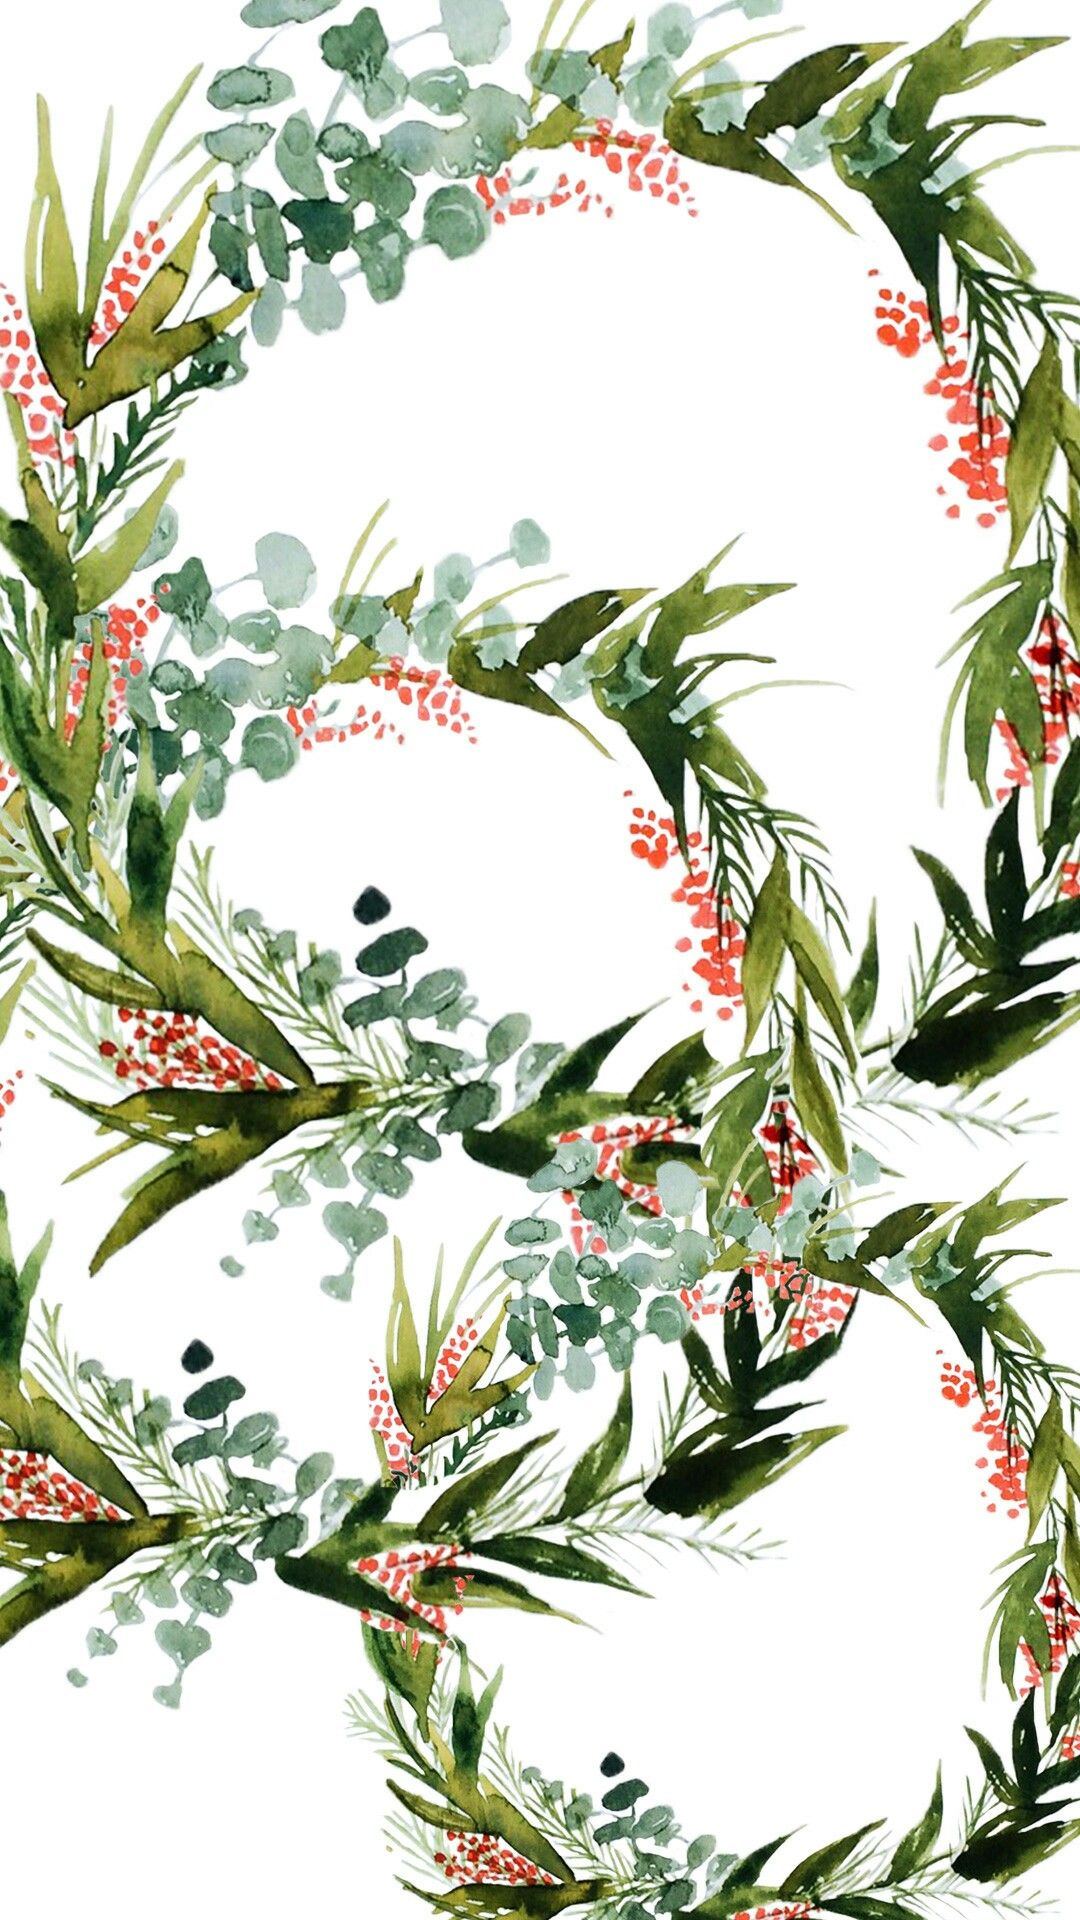 Free Winter Wallpaper Or Background Love The Watercolor Holly Wreaths Christmas Iphone Wallpaper Winter Wallpaper Iphone Christmas Christmas Phone Wallpaper